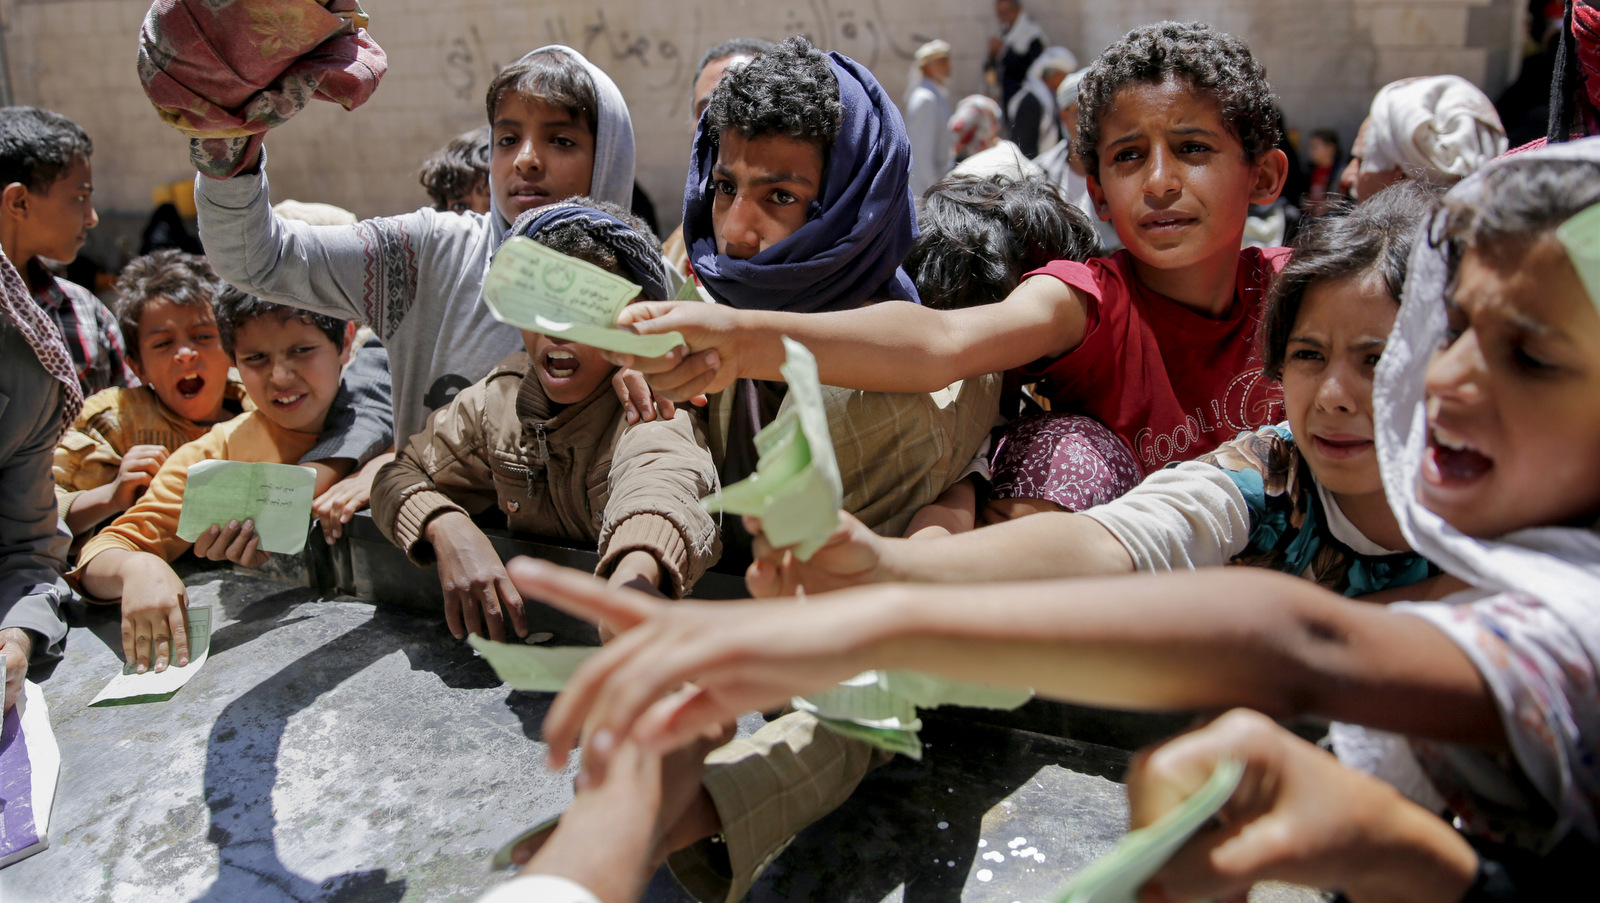 Yemenis present documents in order to receive food rations provided by a local charity, in Sanaa, Yemen, Thursday, April, 13, 2017. A Saudi-led coalition launched a campaign in support of Yemen's internationally recognized government in March 2015. The war has pushed the Arab world's poorest country to the brink of famine. (AP/Hani Mohammed)